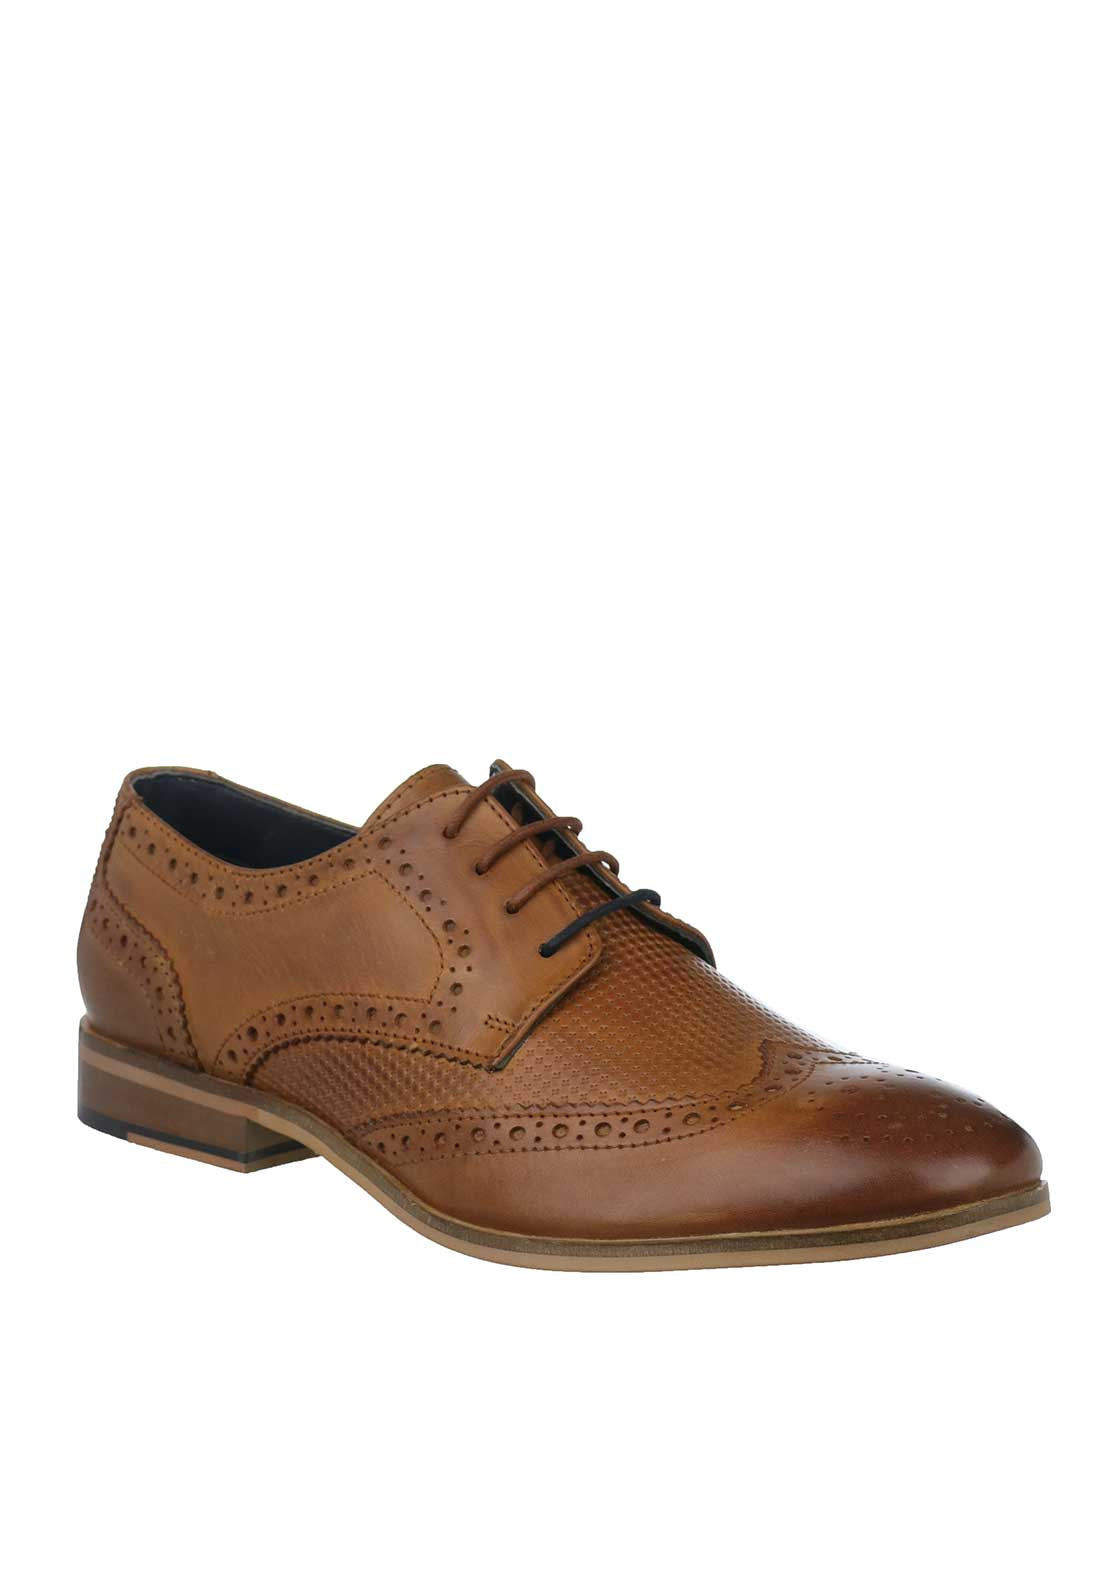 Paul O'Donnell by POD Tulsa Leather Brogue Shoes, Tan